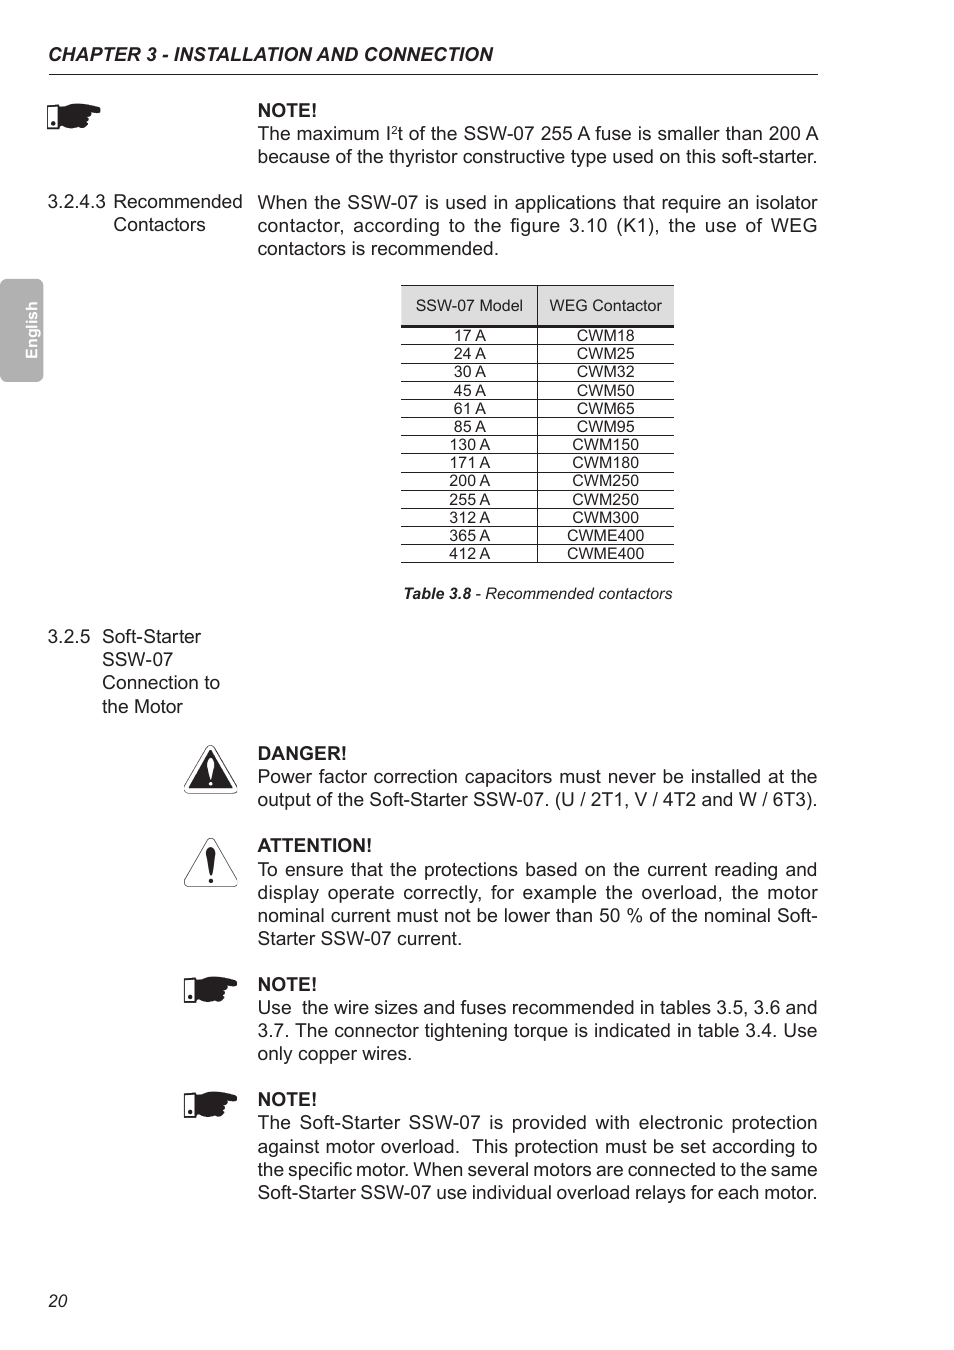 3 recommended contactors 5 soft starter ssw 07 connection to the 3 recommended contactors 5 soft starter ssw 07 connection to the motor xylem ssw 07 soft starter user manual page 21 161 greentooth Images